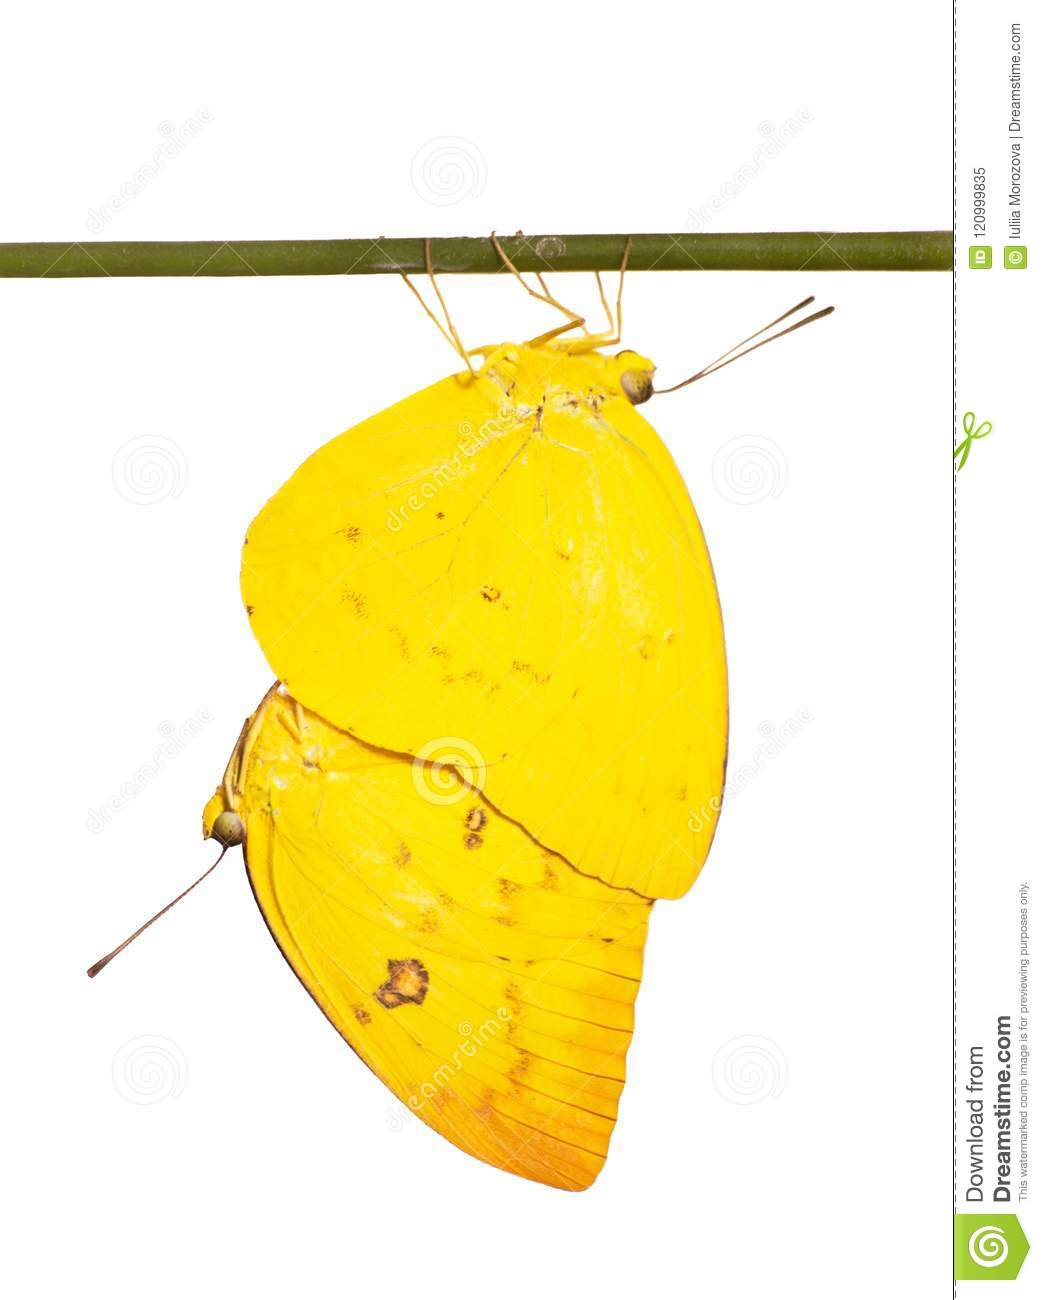 Mating orange emigrant butterflies on a stick isolated on white